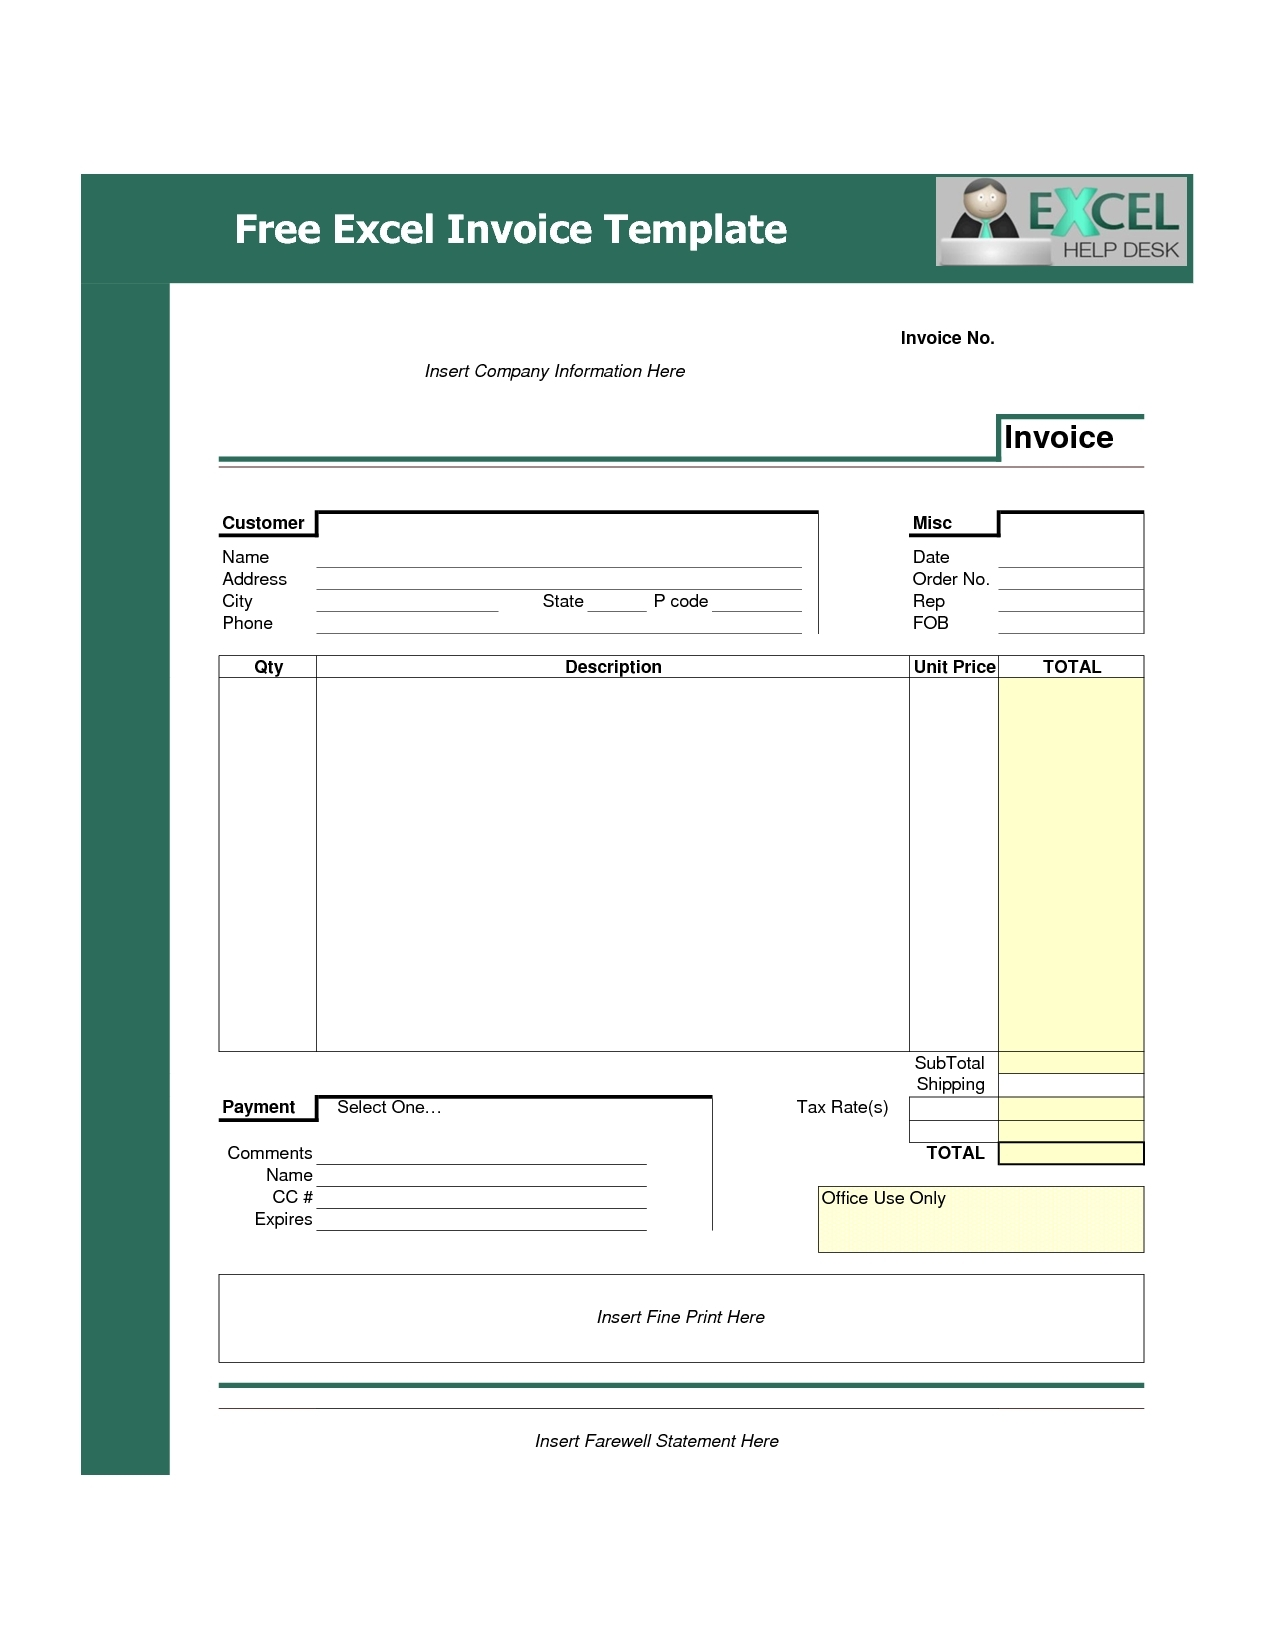 invoice excel template free download invoice template free 2016 download excel invoice template